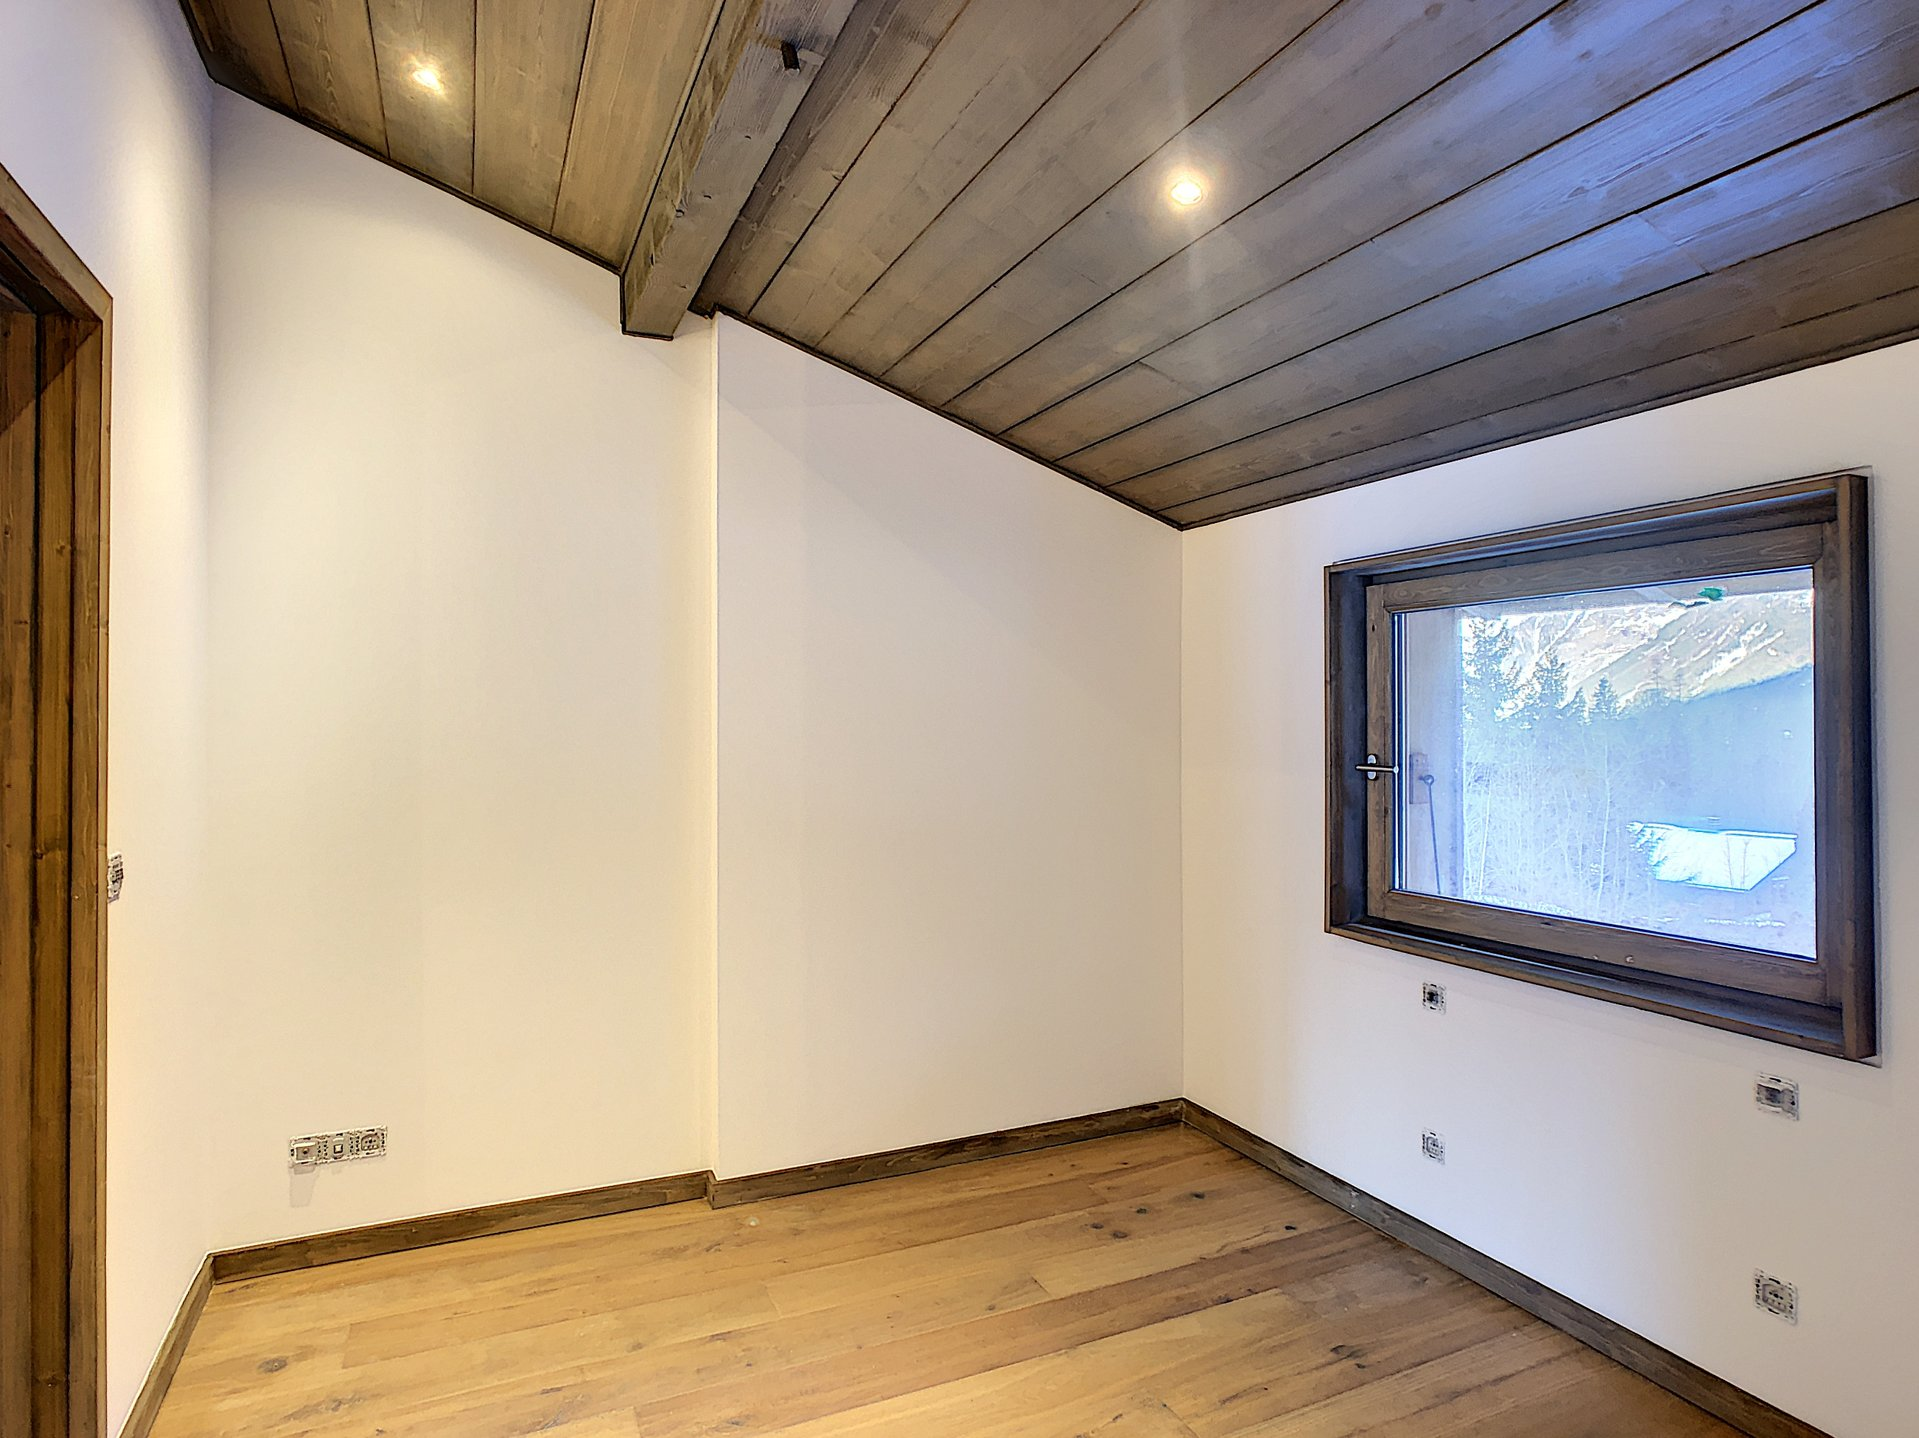 4 bedroom apartment, Les Houches